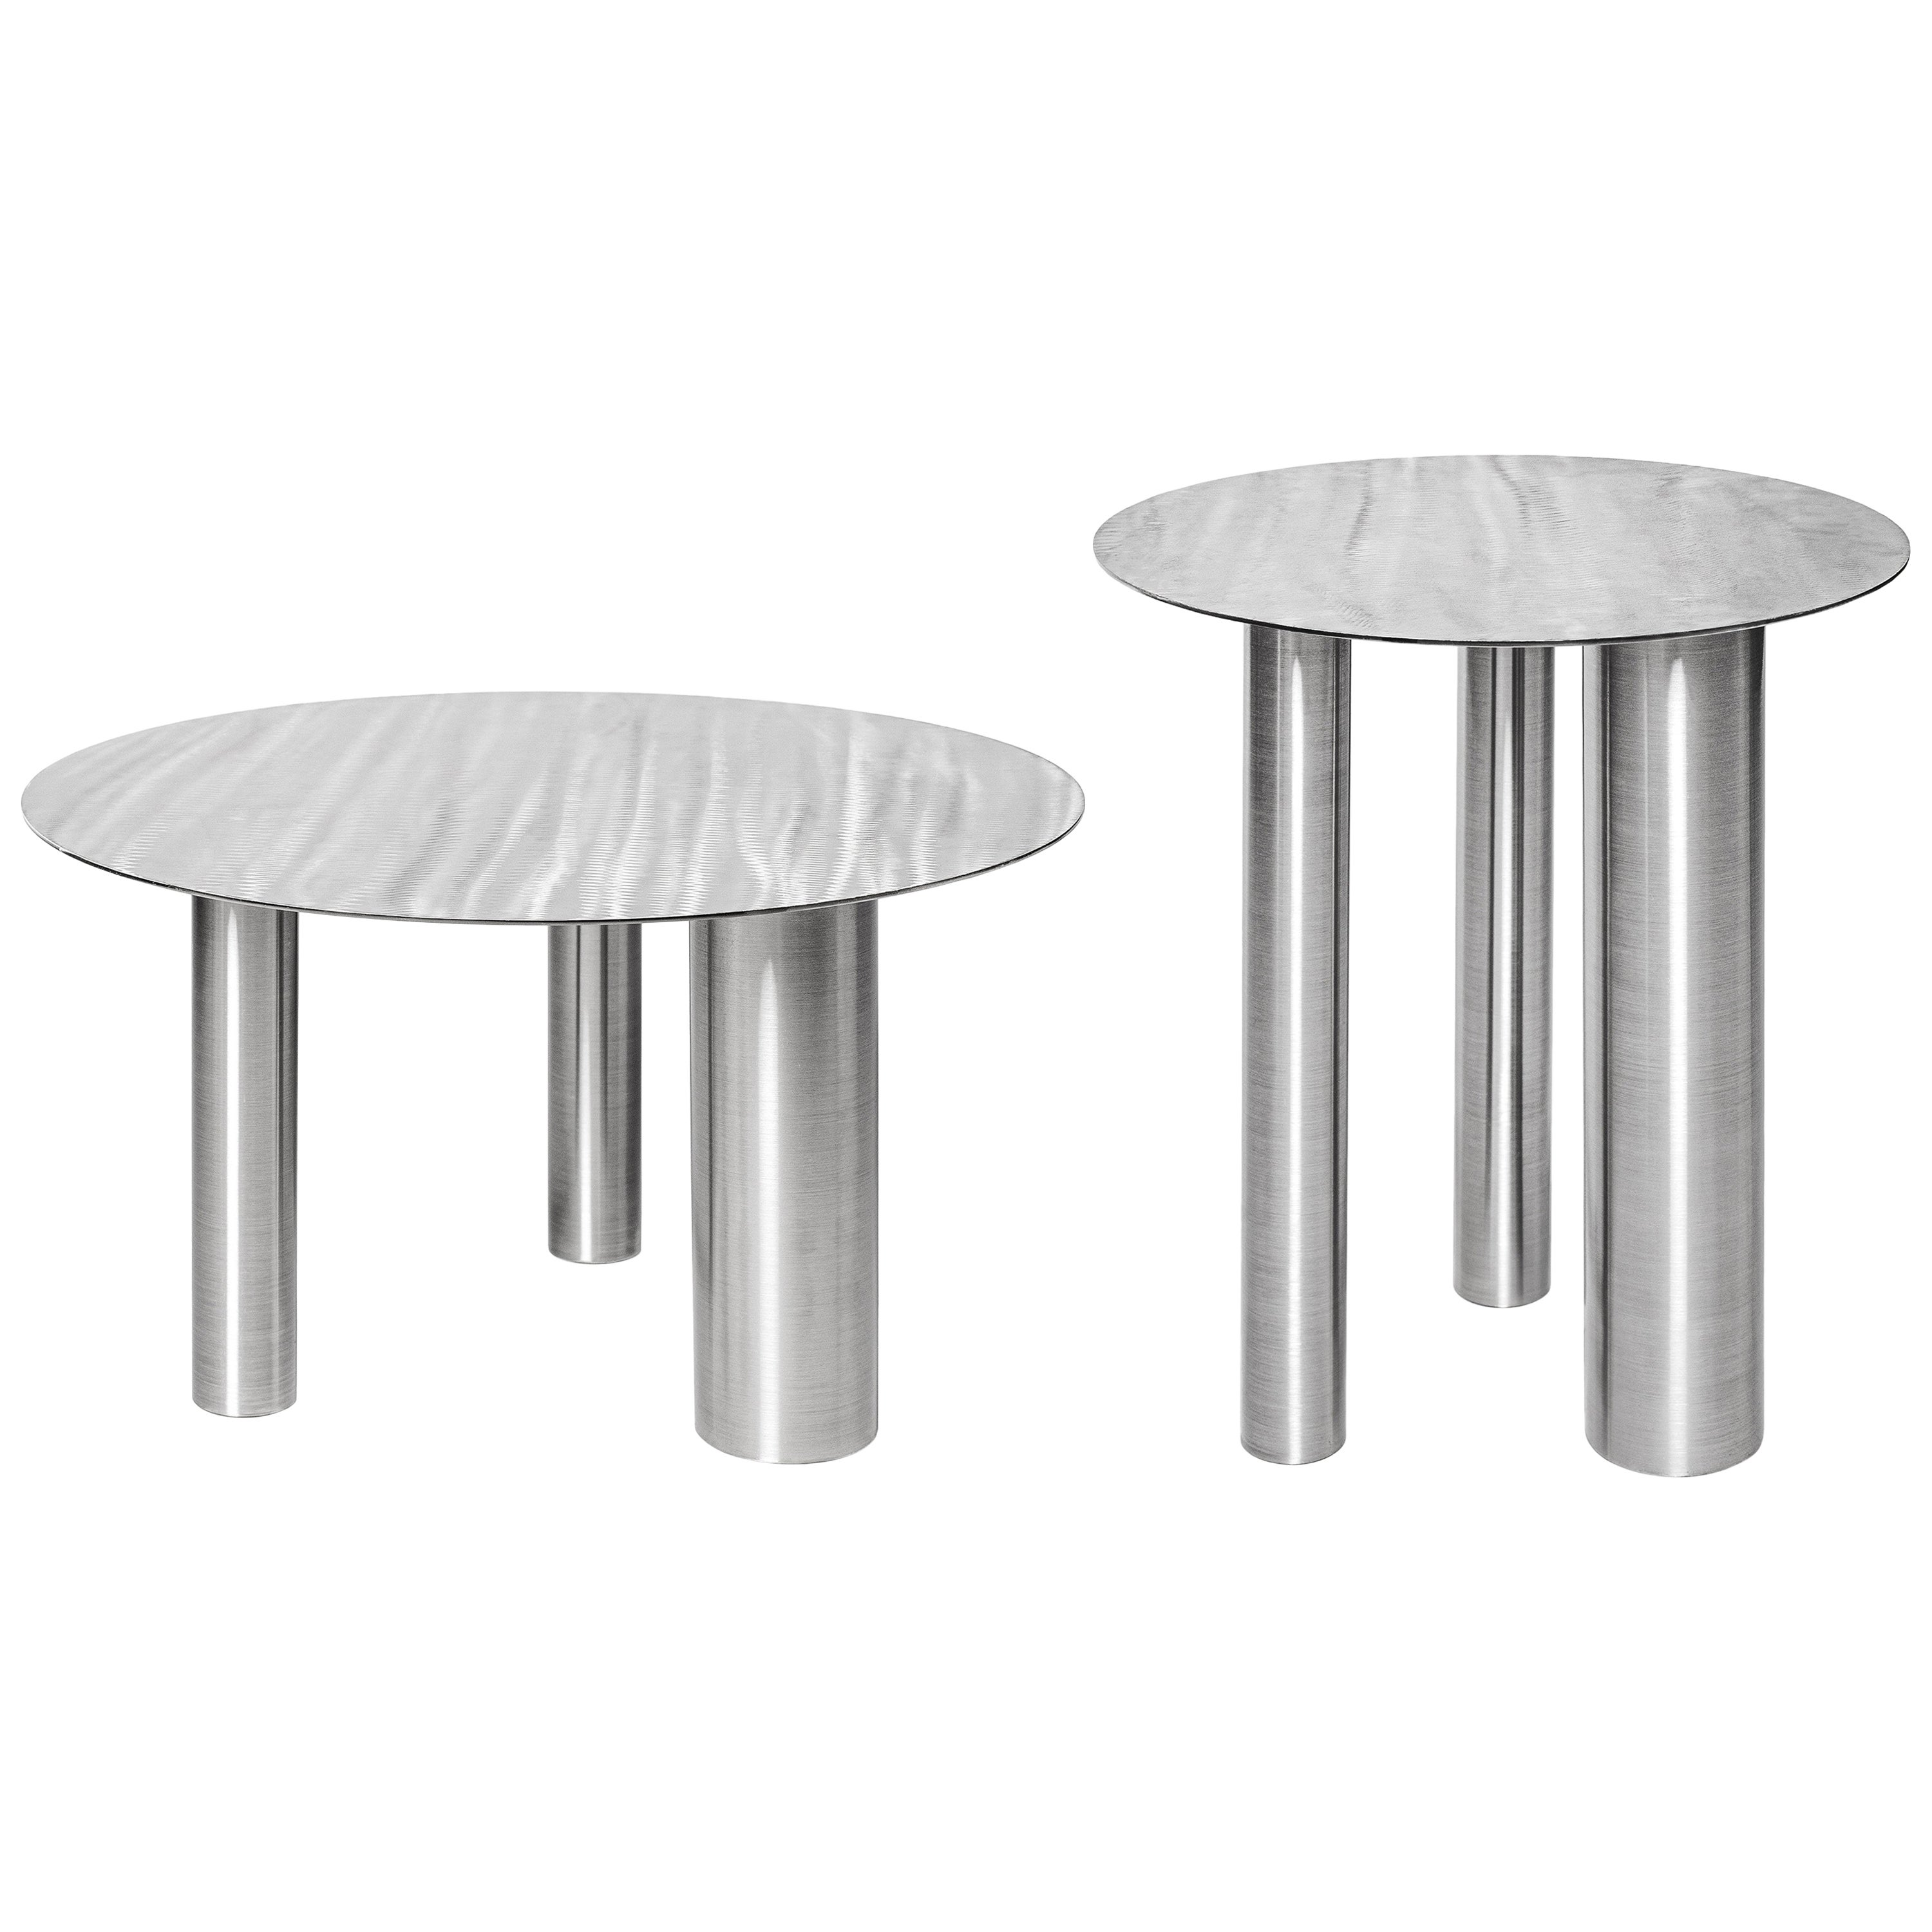 Set of 2 Brandt Coffee Table by NOOM